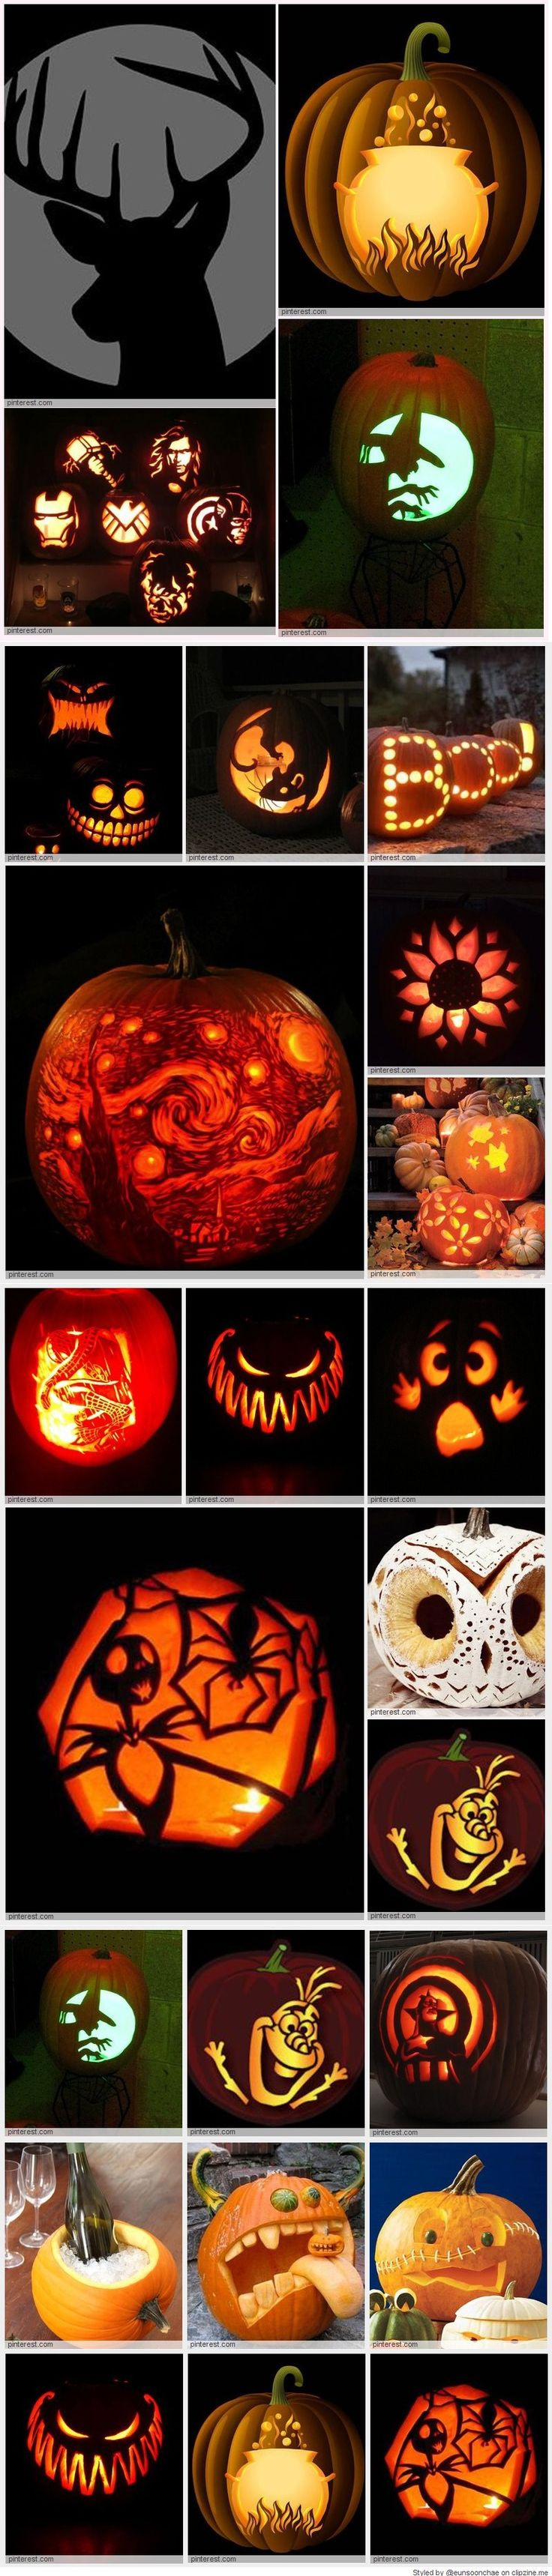 pumpkin carving patterns - Pumpkin Halloween Carving